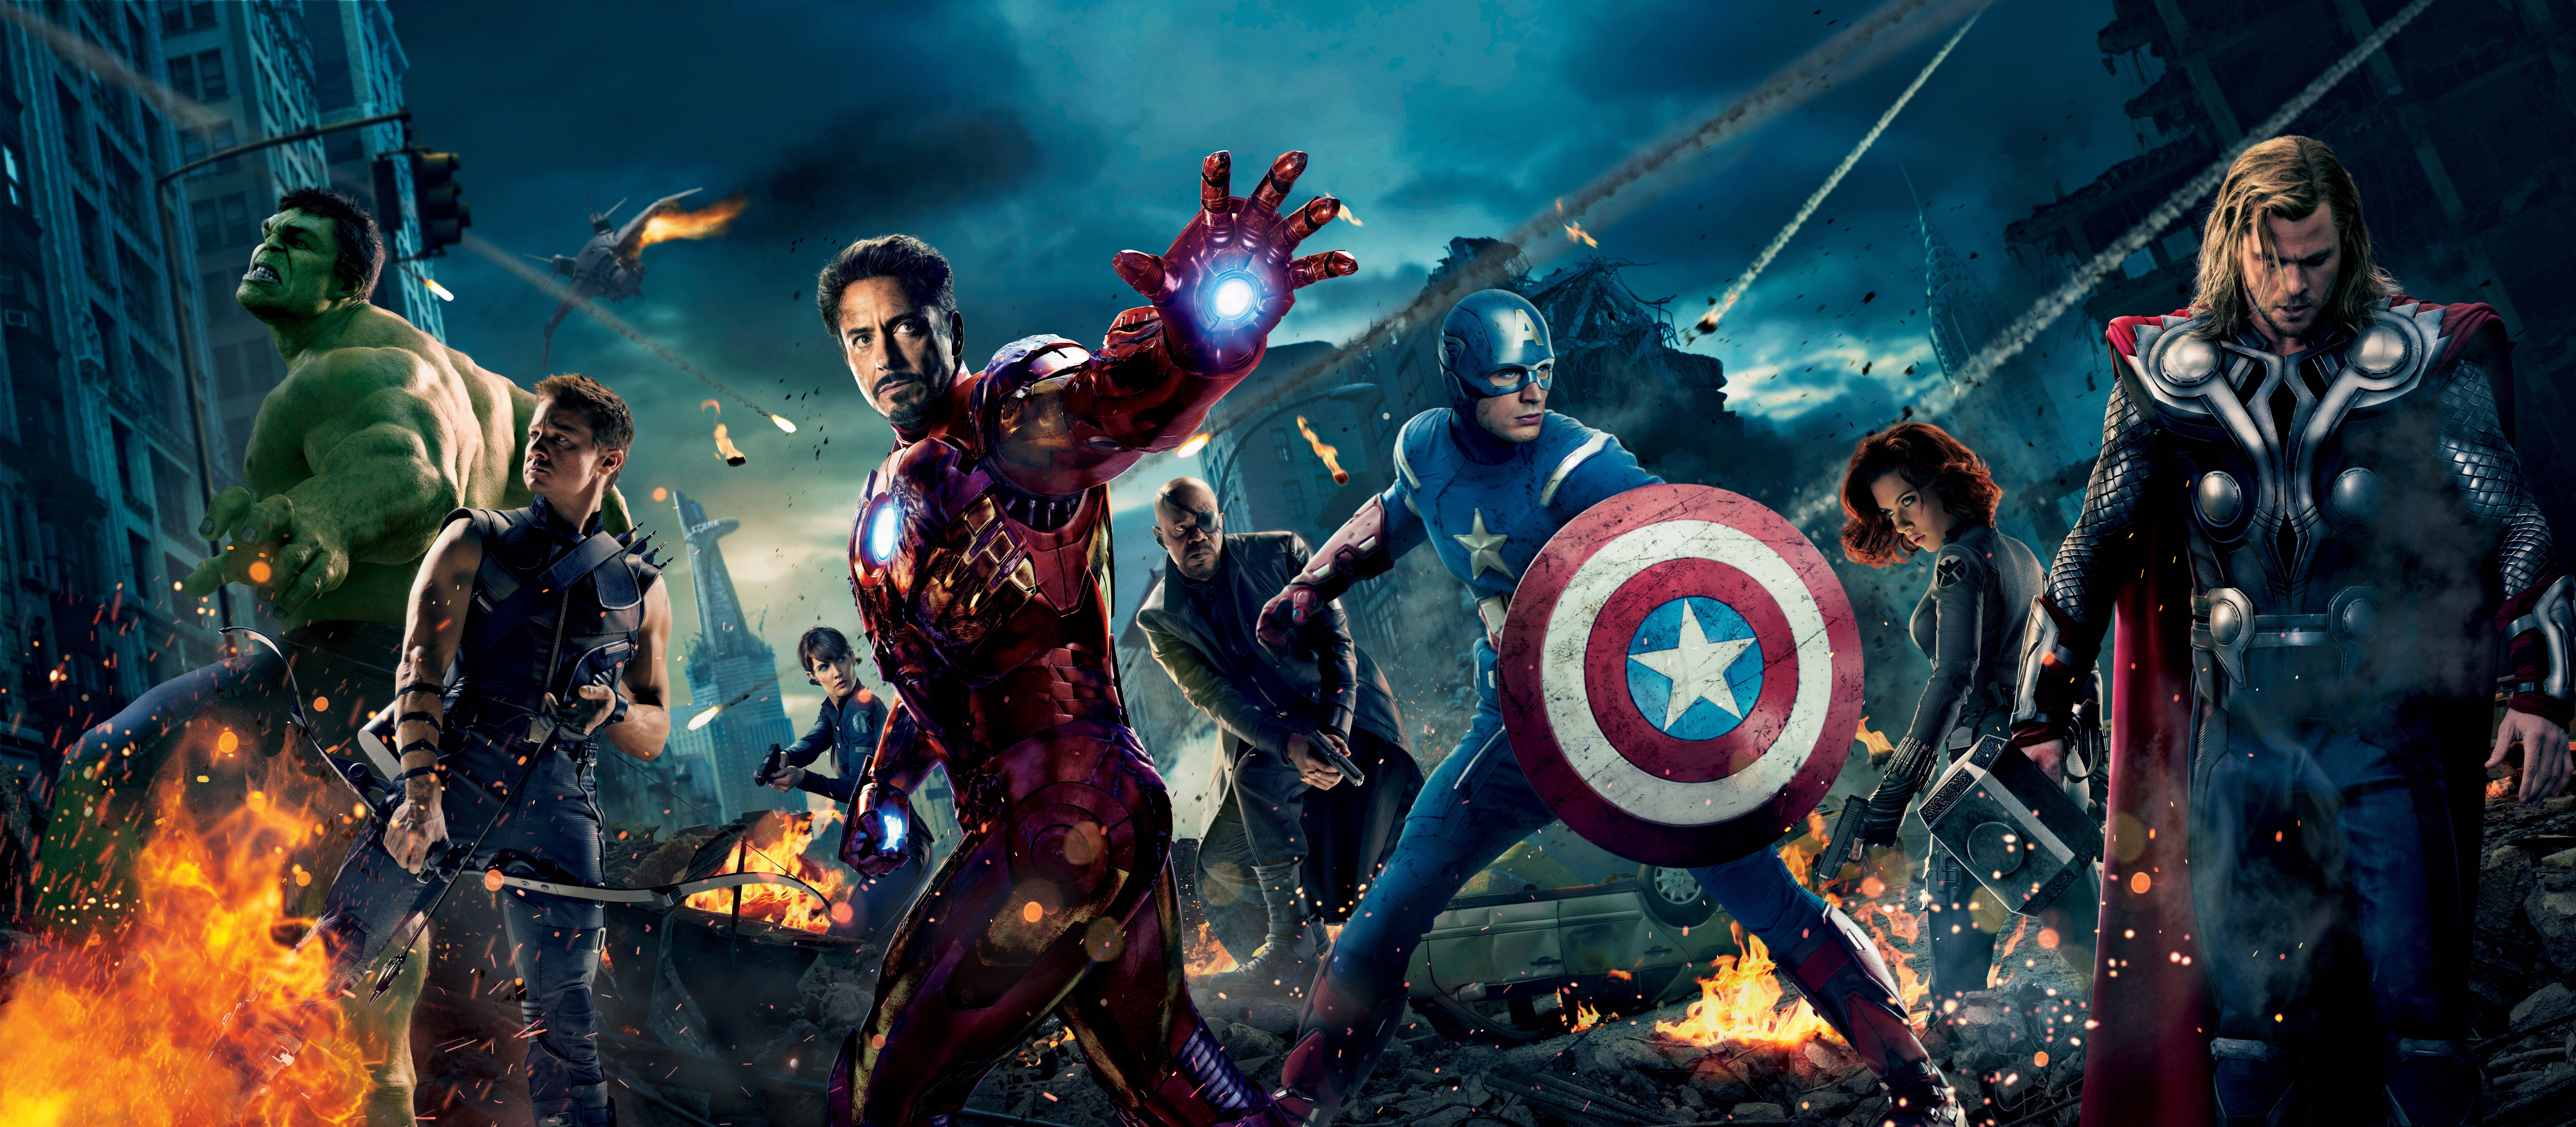 Avengers Assemble Wallpaper Hd The Avengers Wallpapers Hd Desktop And Mobile Backgrounds